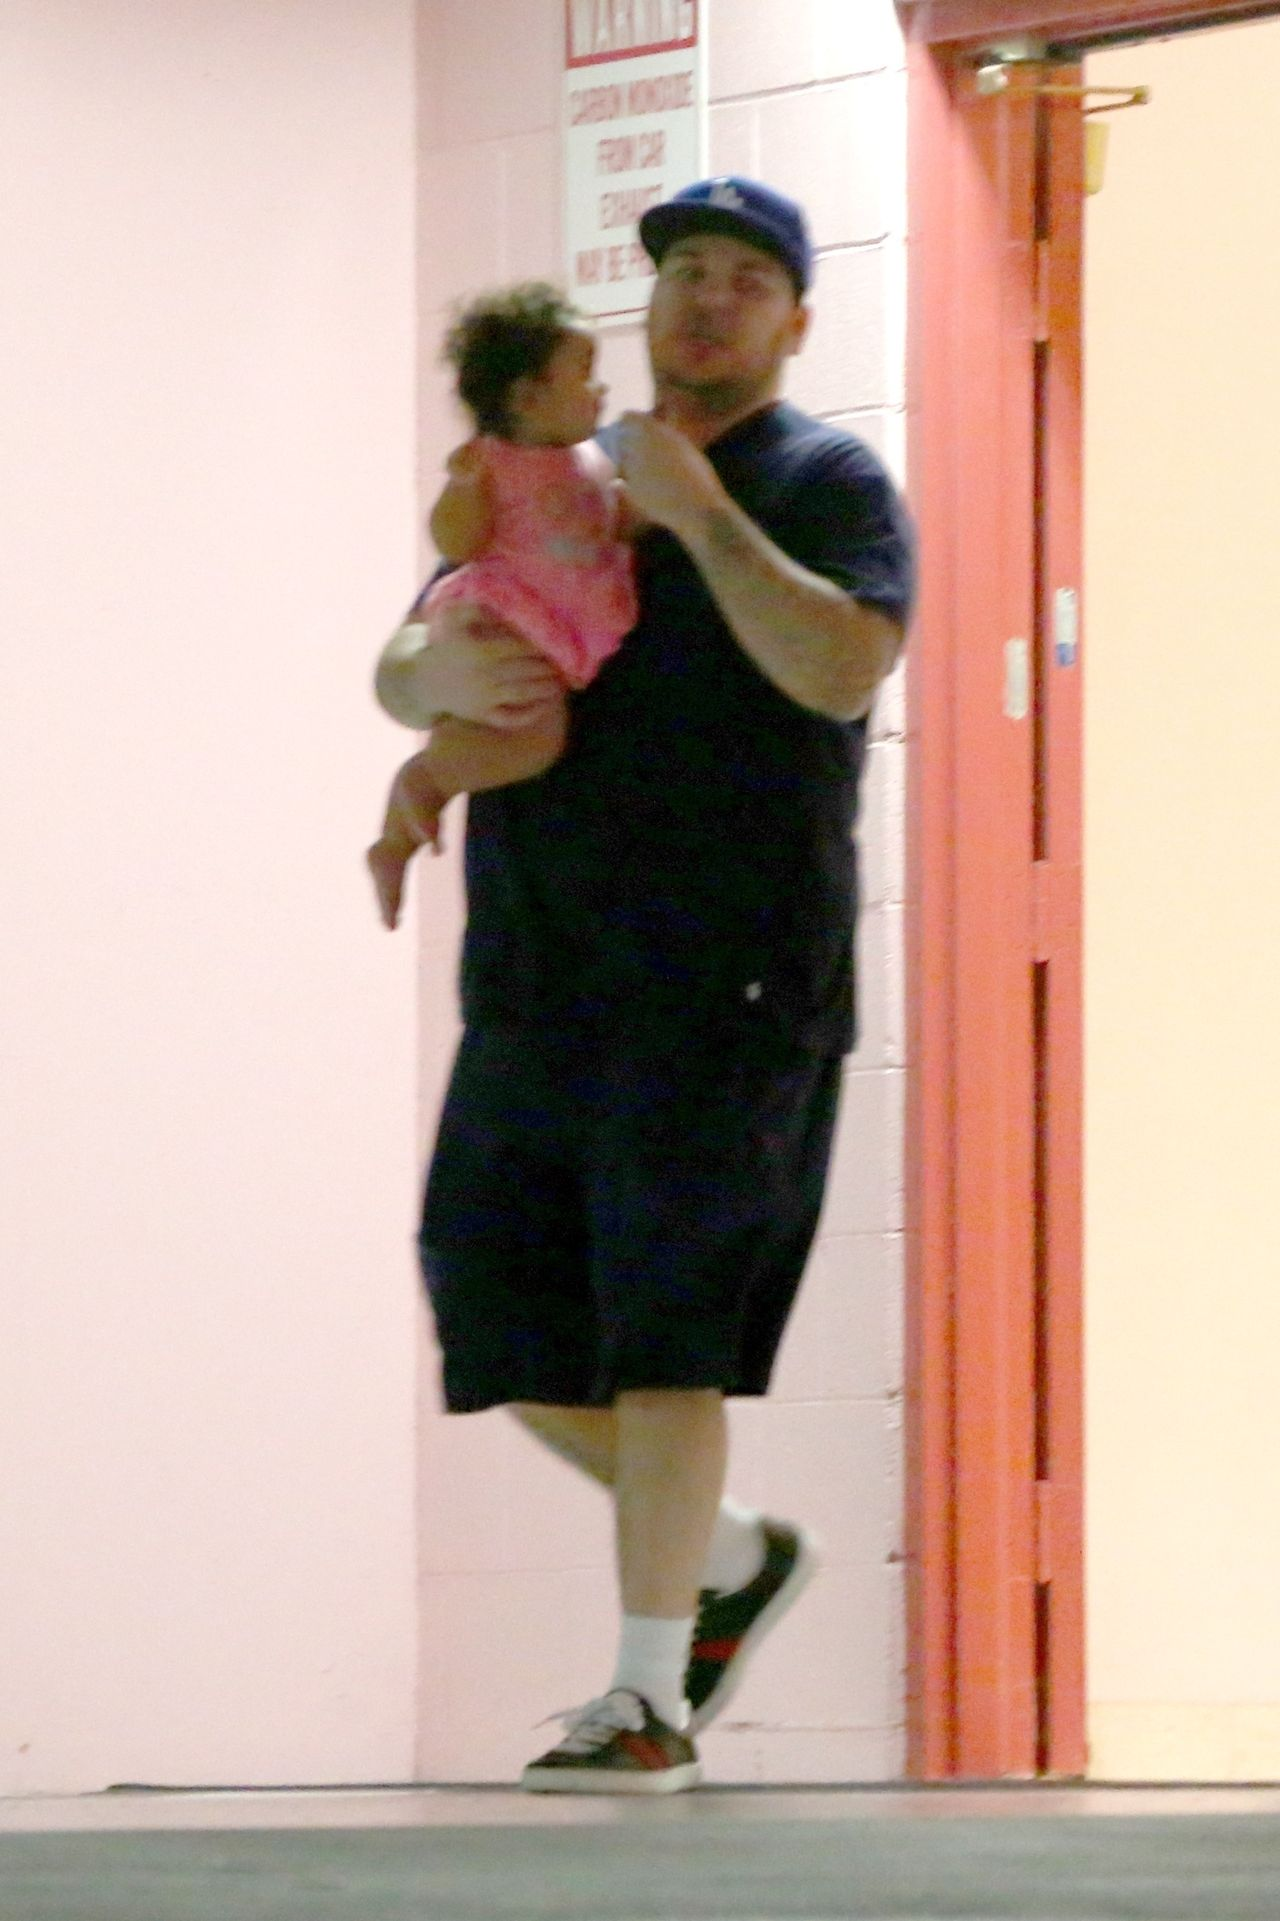 *PREMIUM-EXCLUSIVE* Rob Kardashian takes his daughter Dream to the doctor's office **WEB EMBARGO UNTIL 7PM PST ON 08/12/17** Rob Kardashian